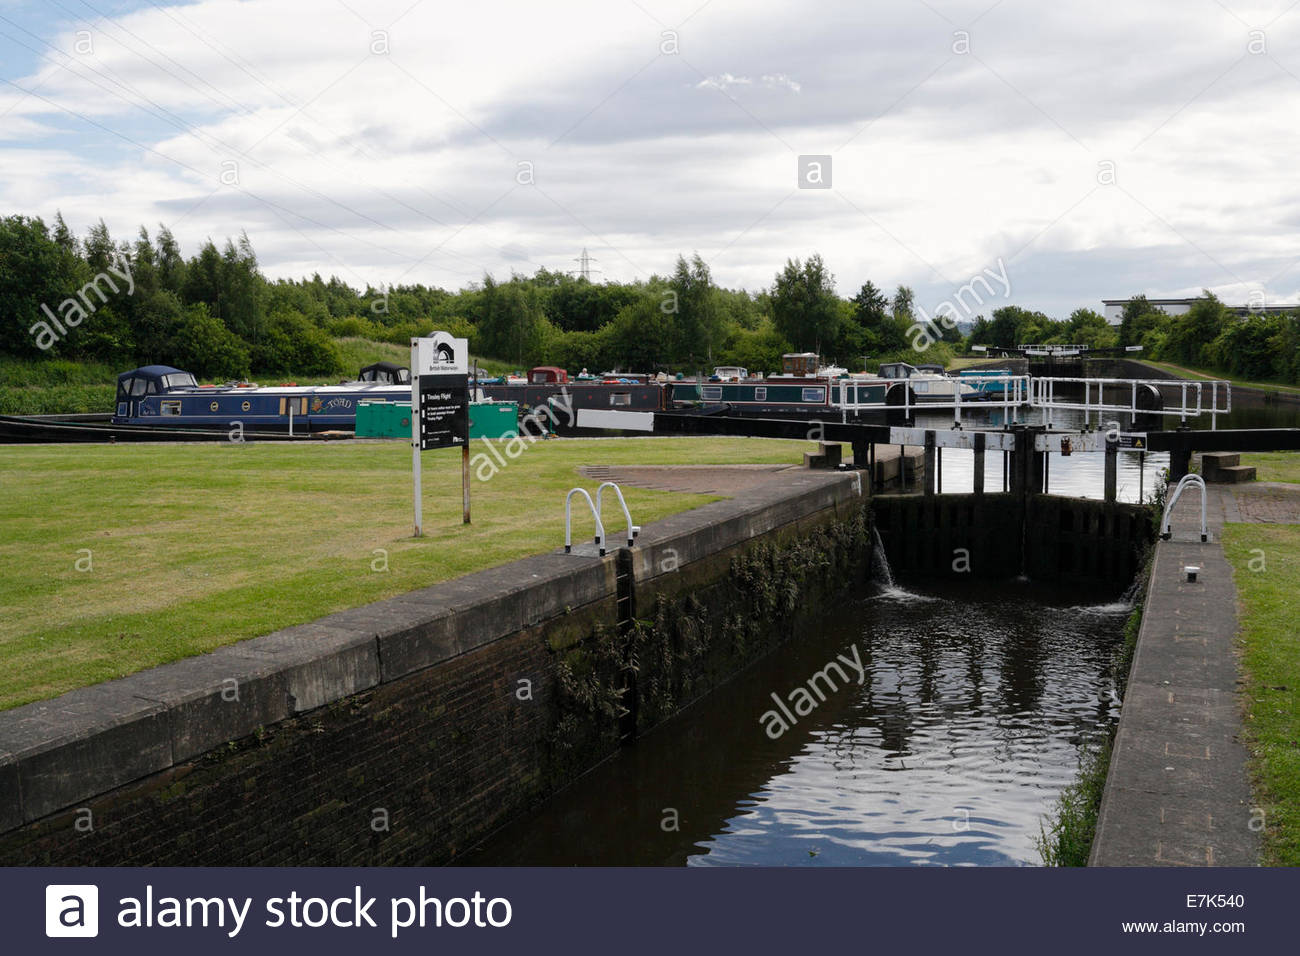 Canal boats moored at Tinsley Lock on the Sheffield canal - Stock Image